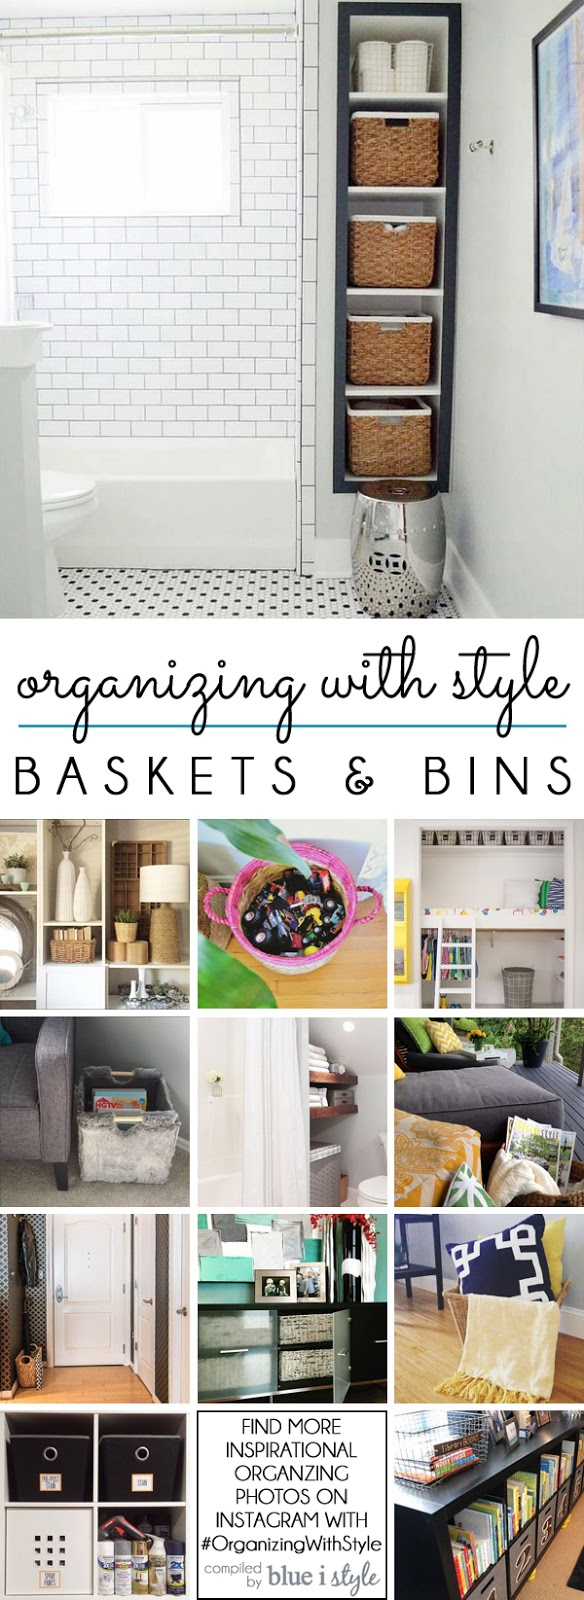 12 Ways to Organize with Baskets and